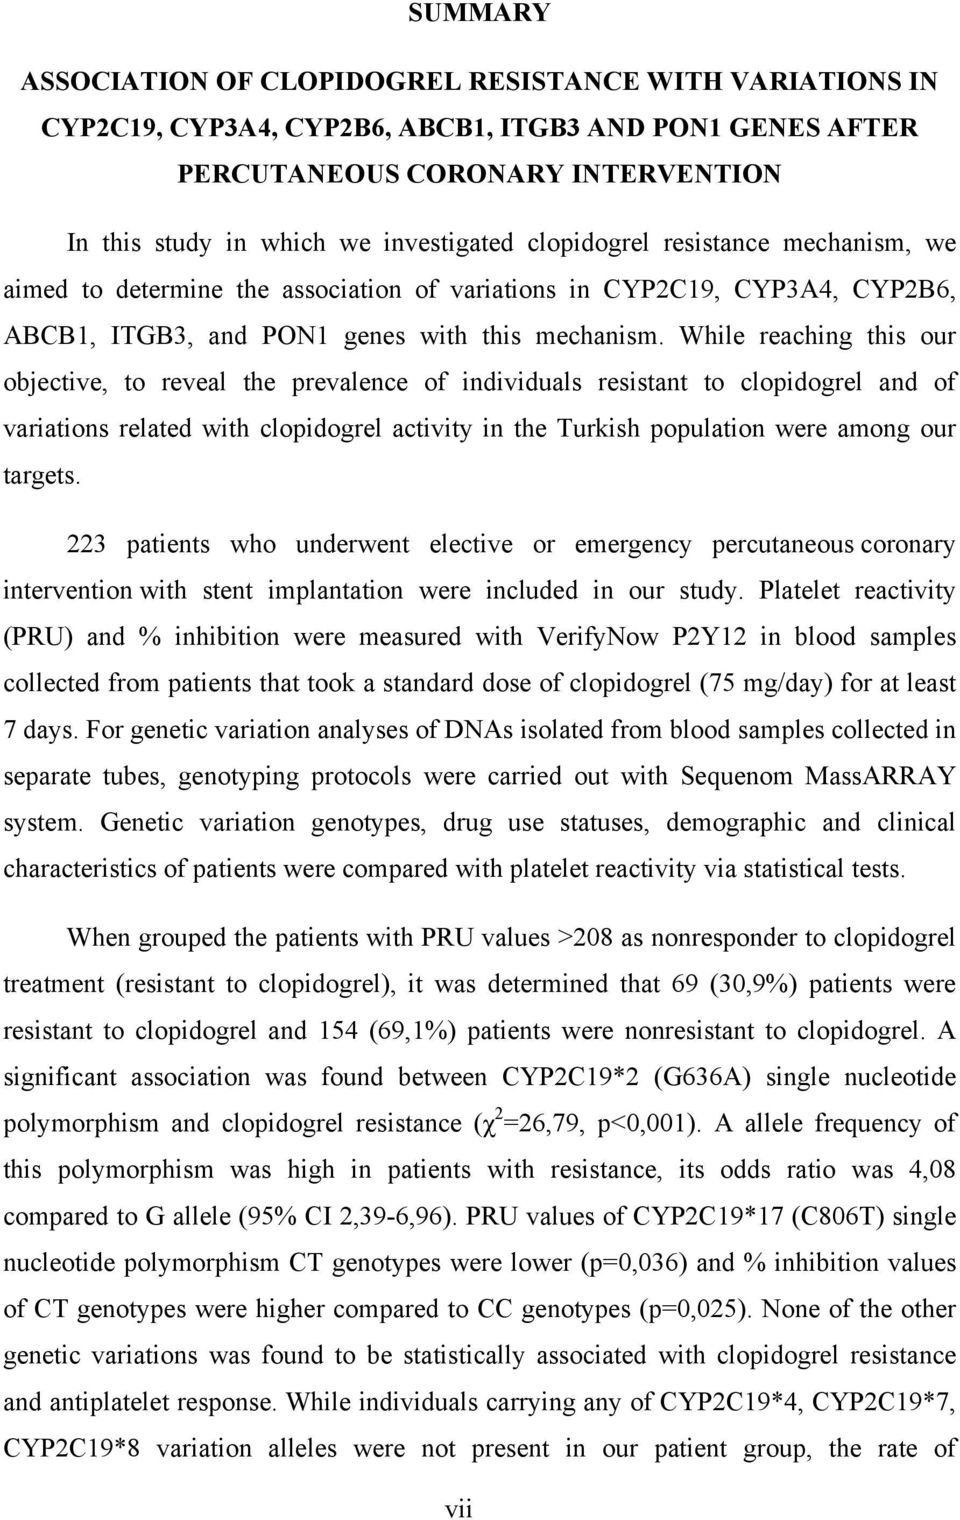 While reaching this our objective, to reveal the prevalence of individuals resistant to clopidogrel and of variations related with clopidogrel activity in the Turkish population were among our